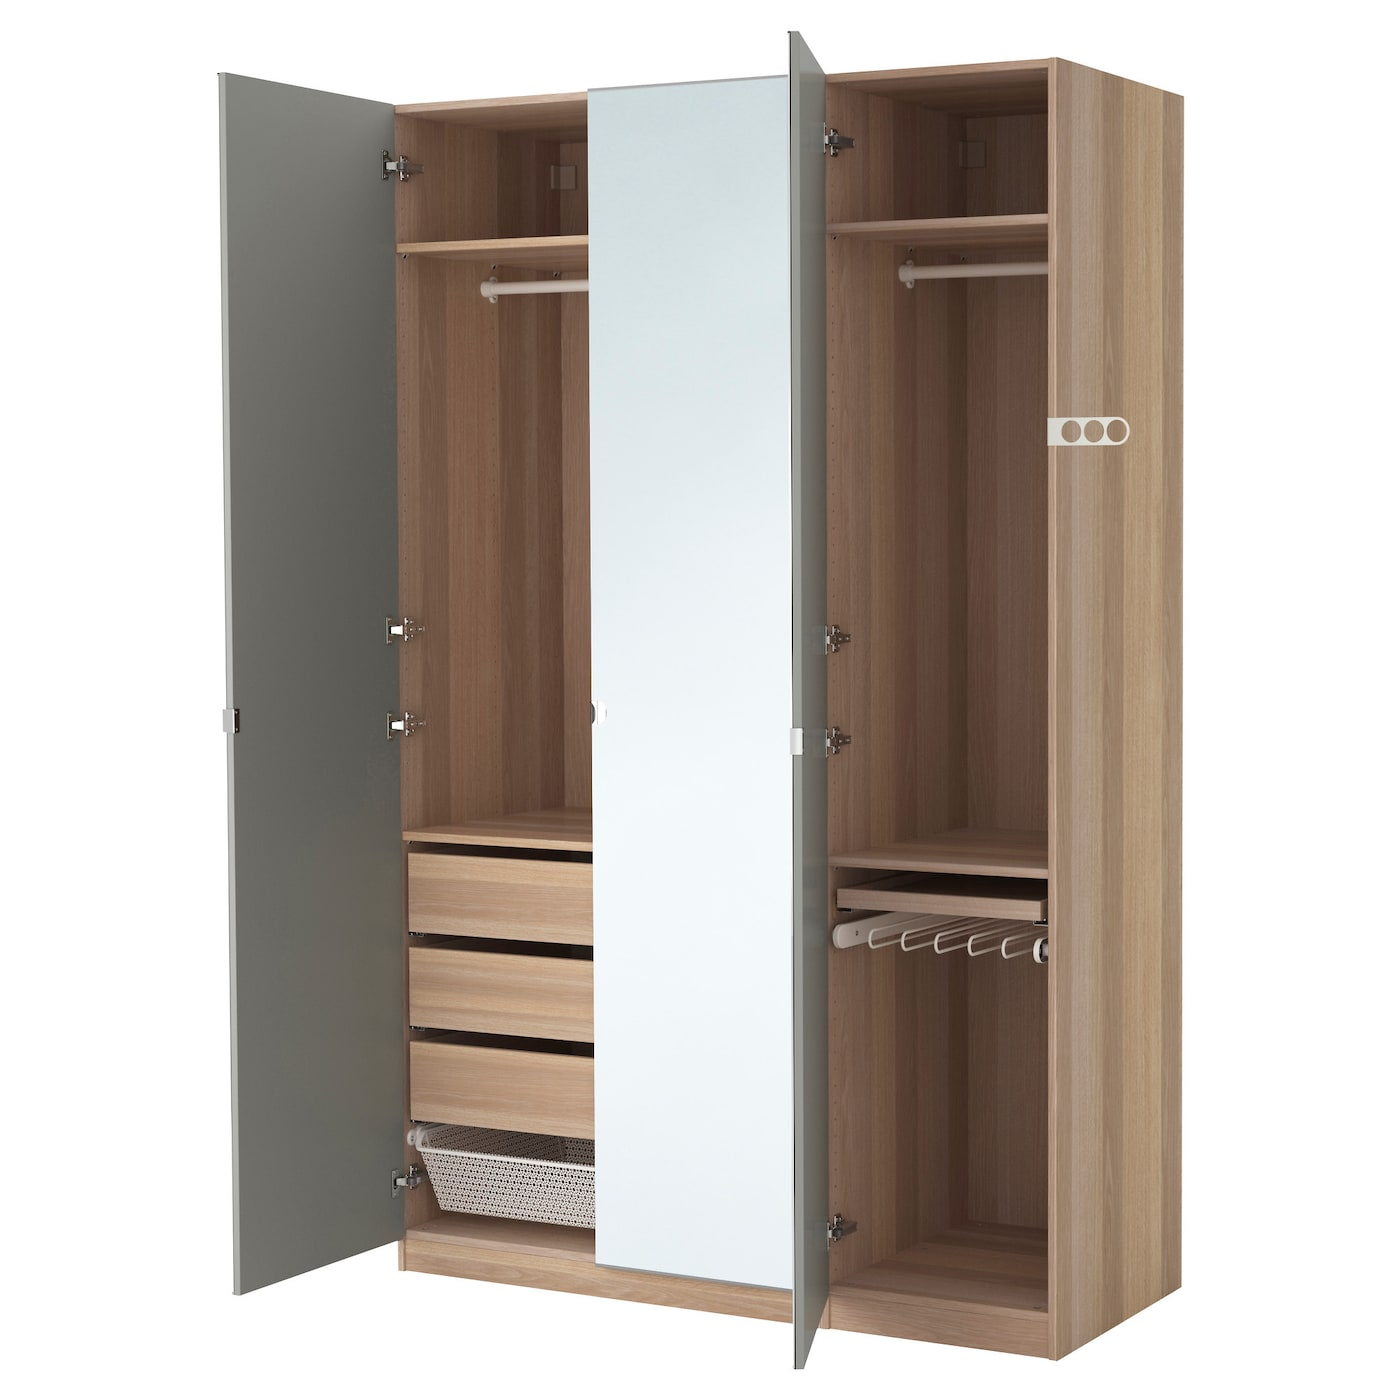 pax wardrobe white stained oak effect vikedal mirror glass. Black Bedroom Furniture Sets. Home Design Ideas